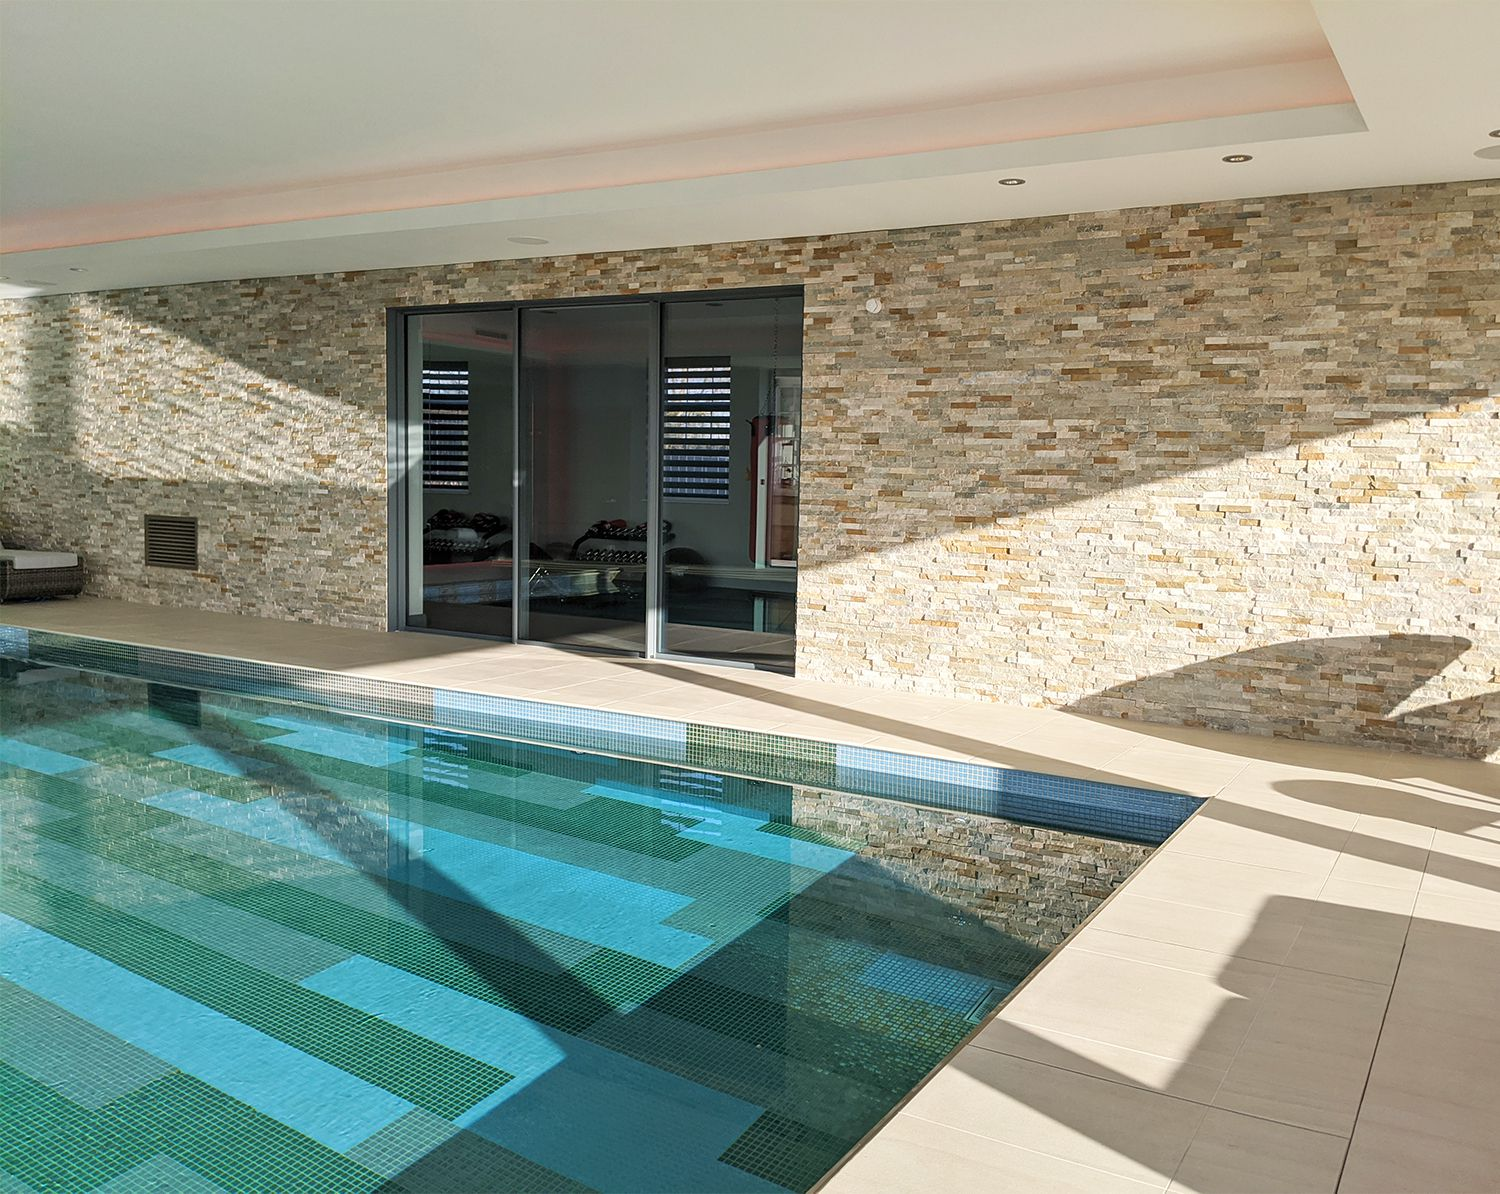 The pool with the glass doors which are the entrance to the gym.